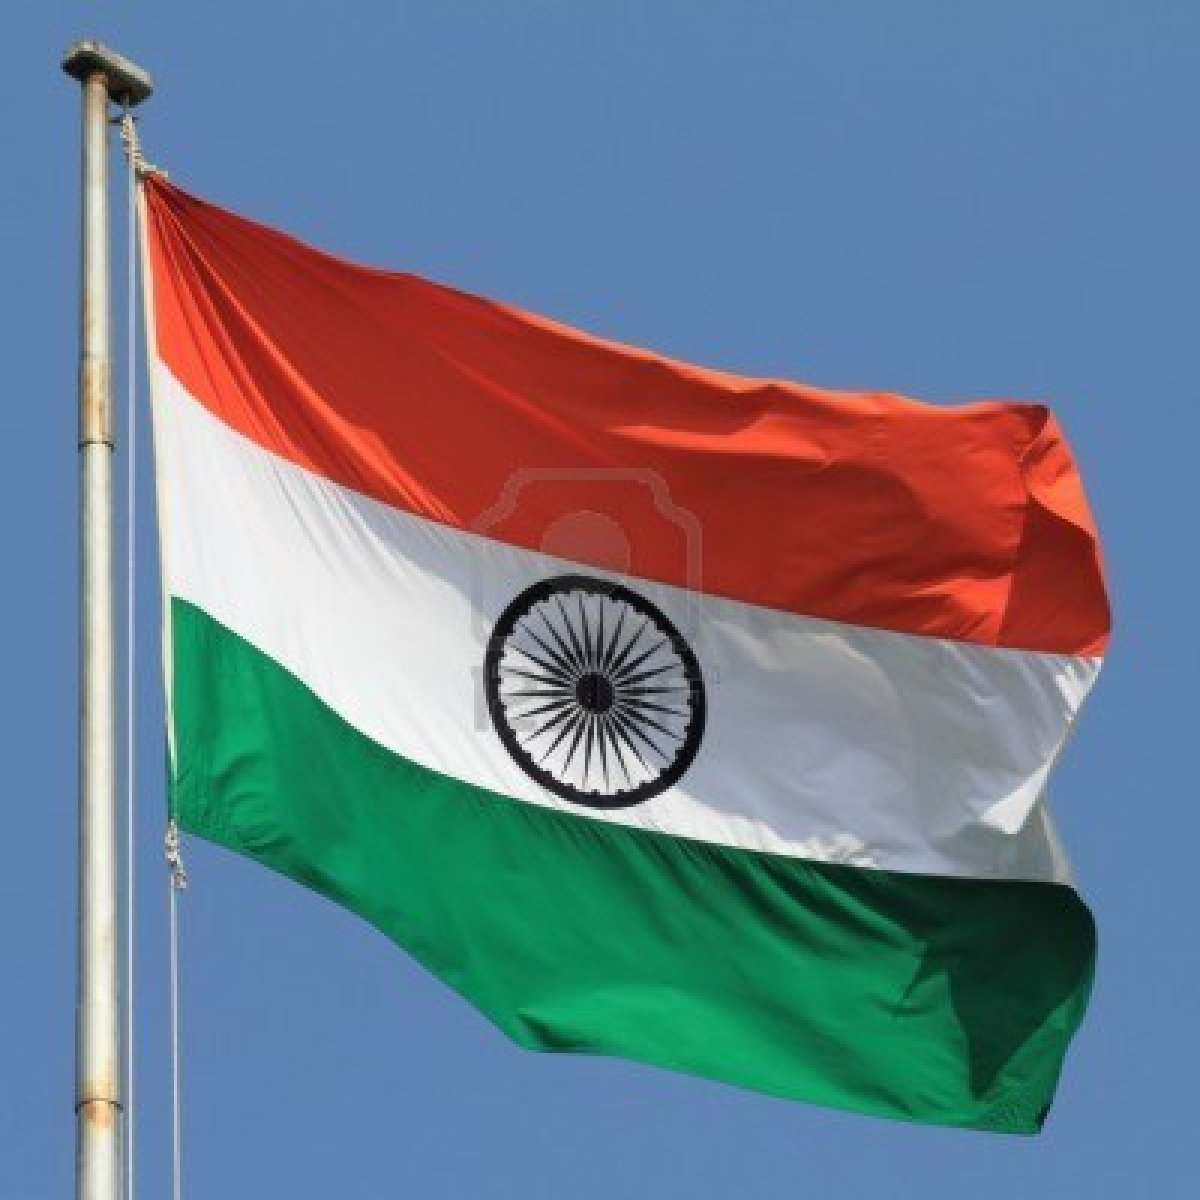 Hd Wallpapers Free Indian Flag High Resolution Wallpapers